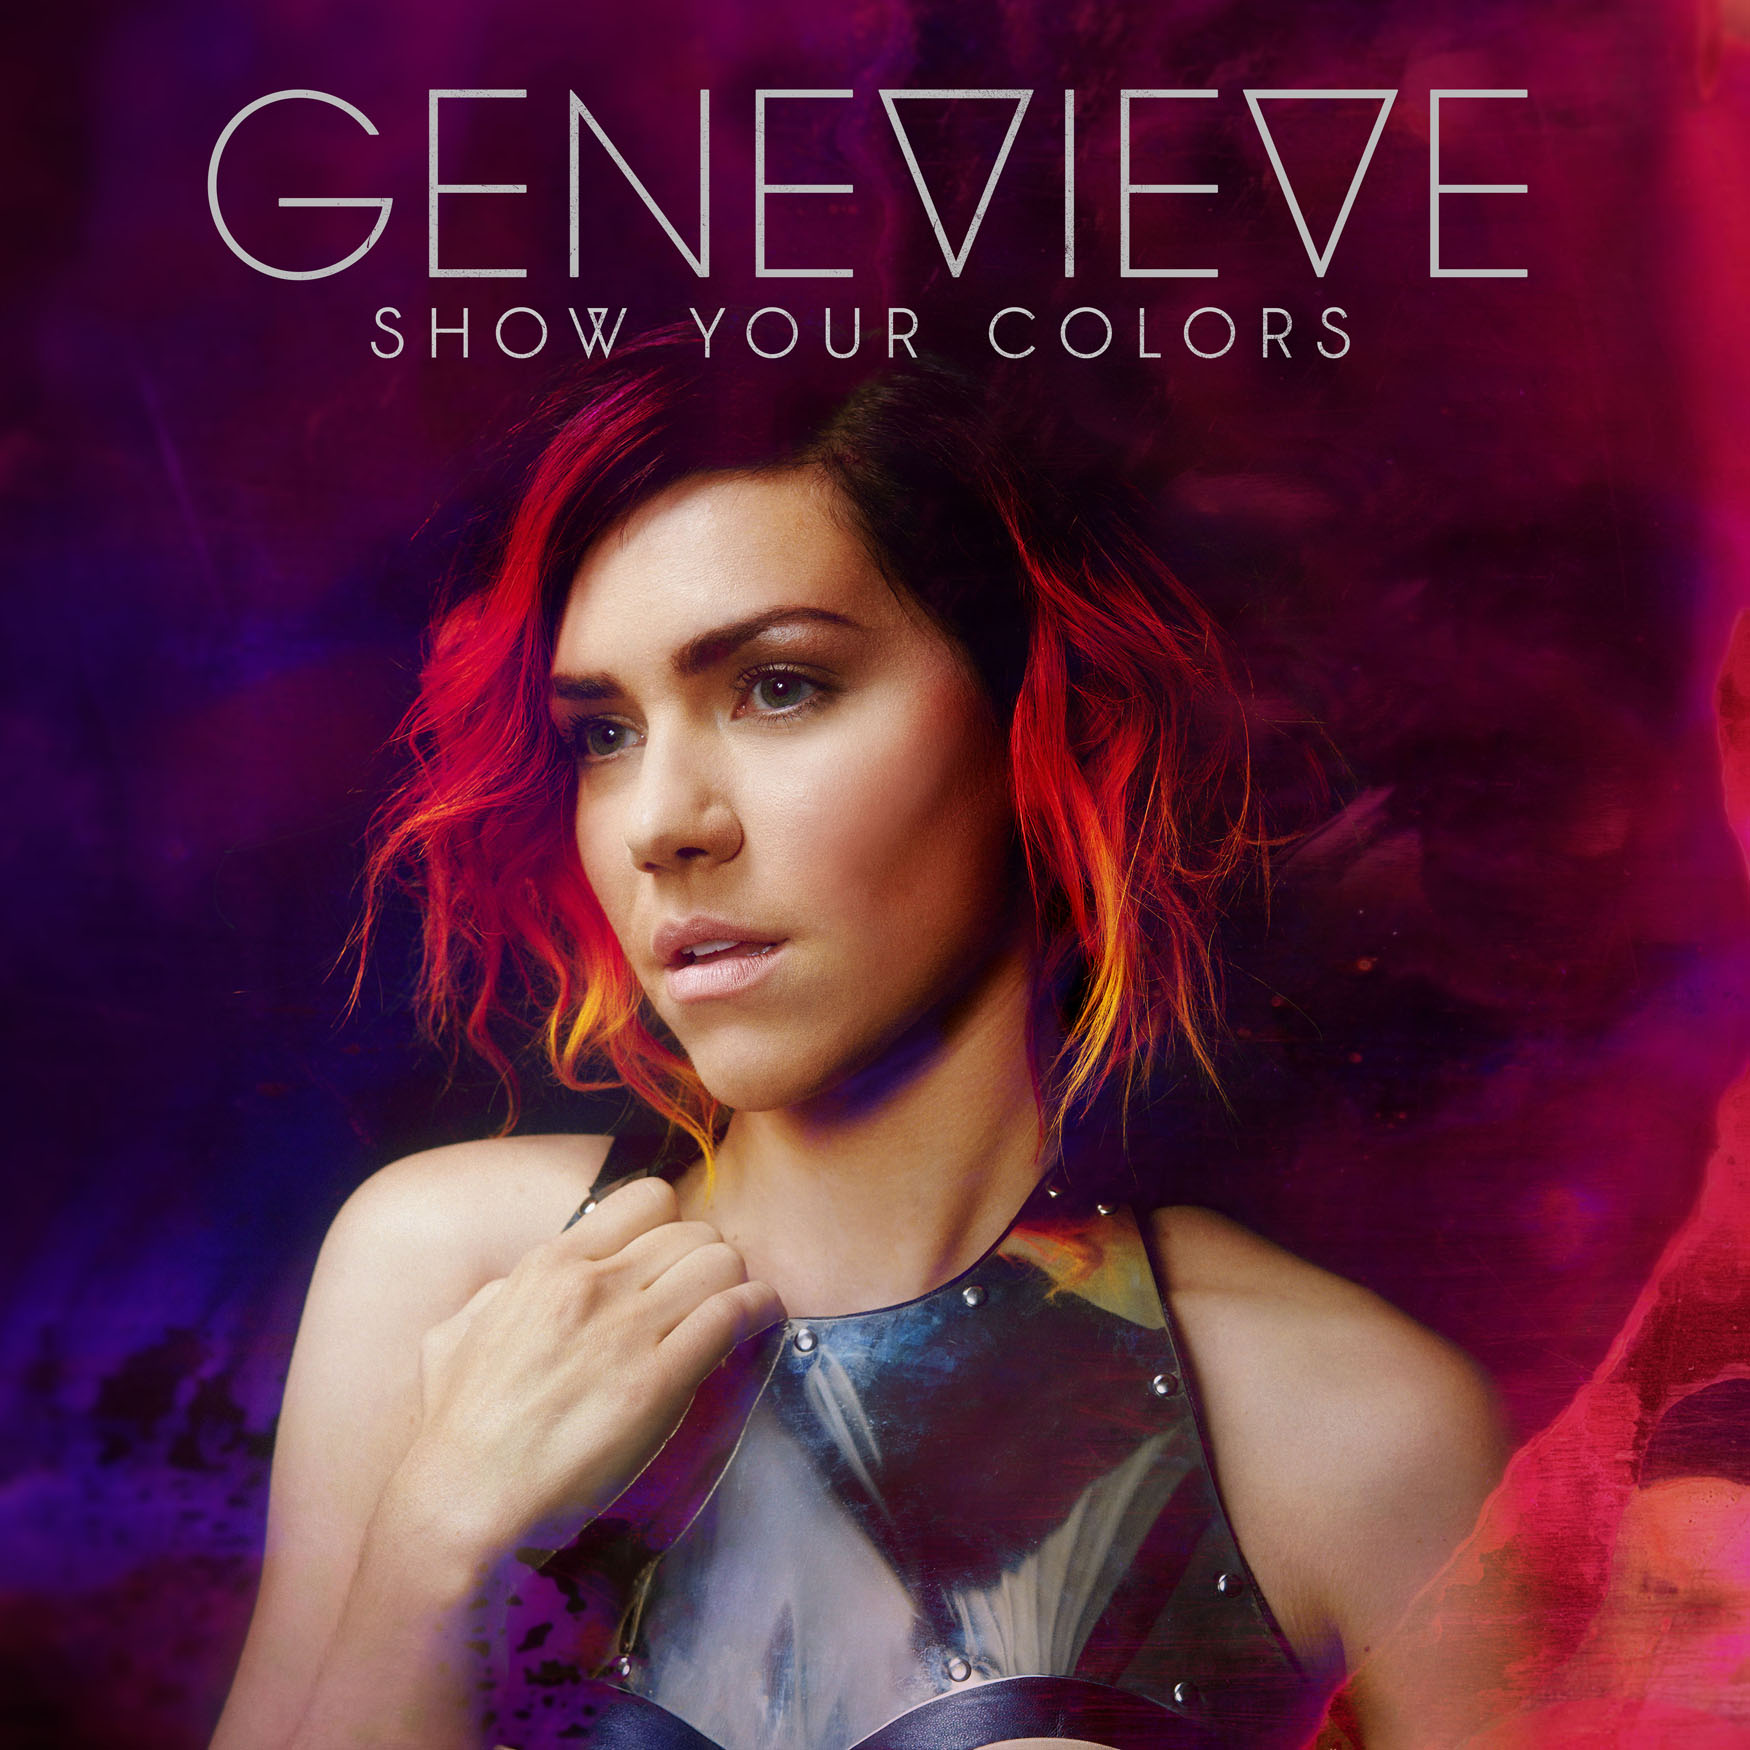 Genevieve-Show-Your-Colors-EP-Cover-Art